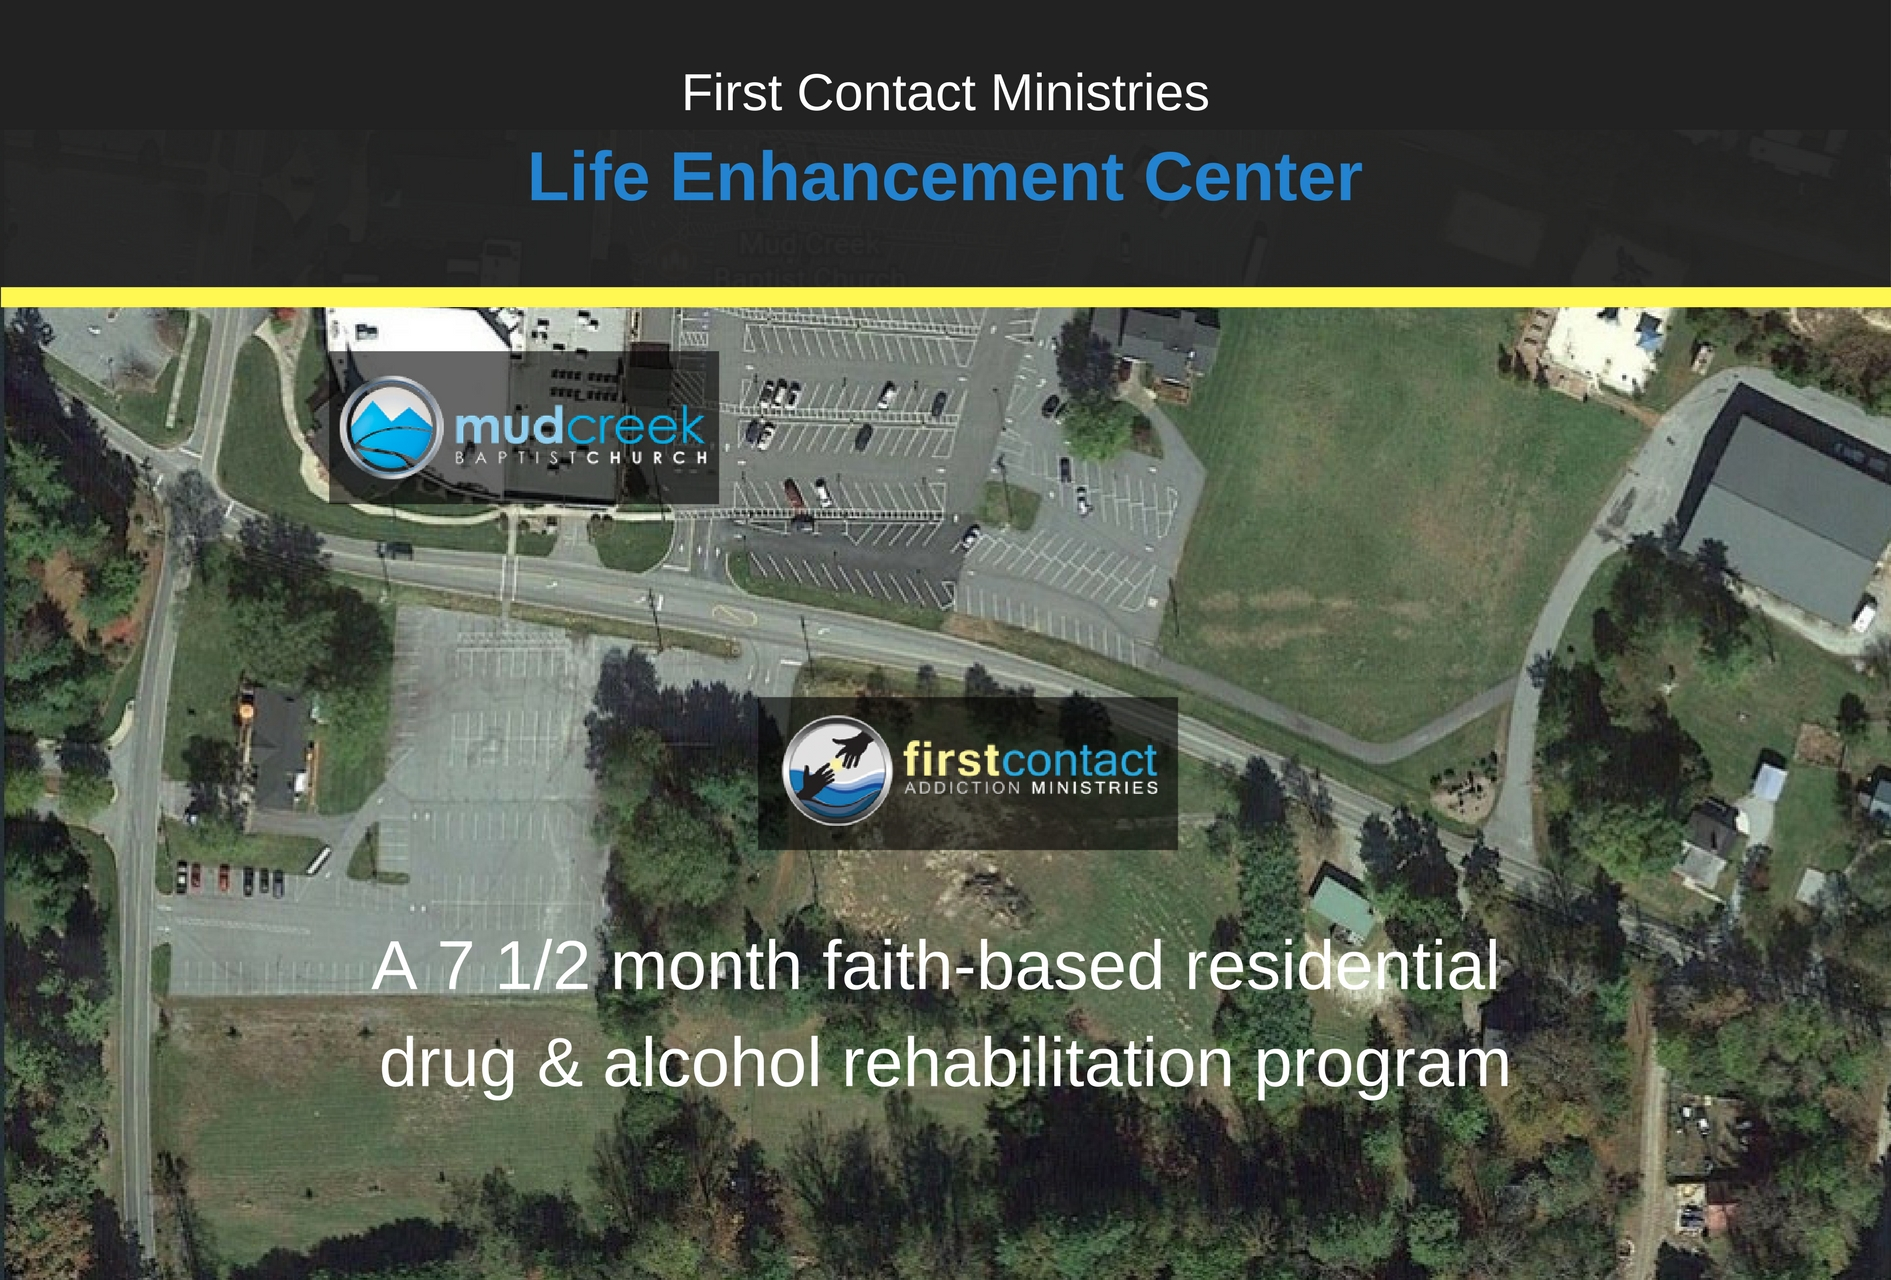 First Contact Ministries Proposed Life Enhancement Center for Drug & Alcohol Rehabilitation in Hendersonville, NC